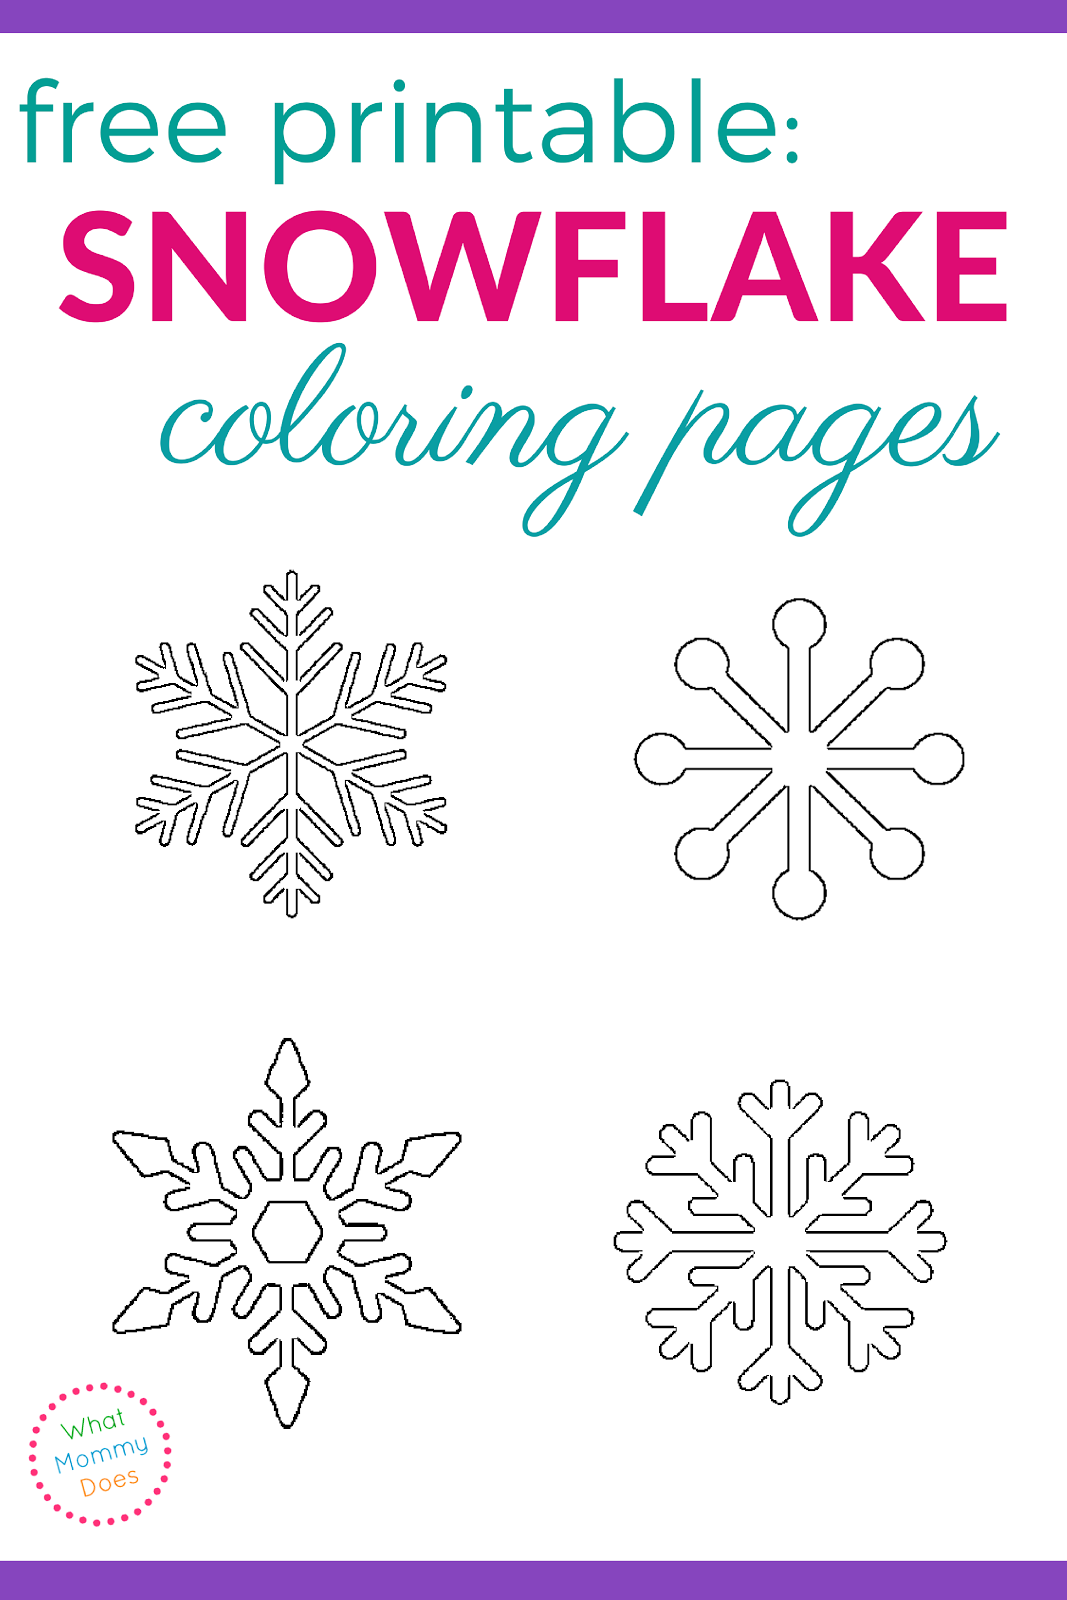 Printable Snowflake Coloring Pages Snowflake coloring